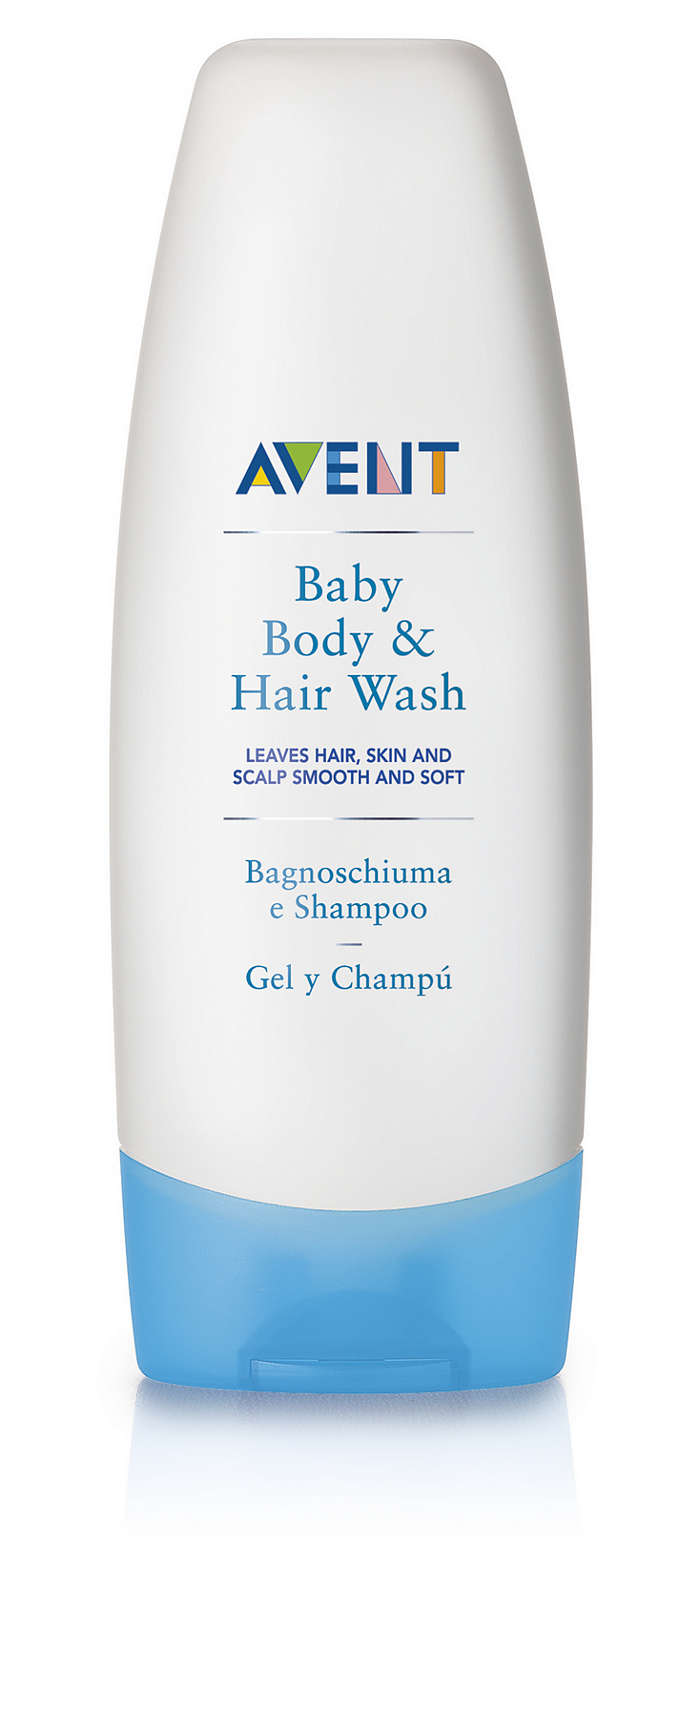 Leaves hair, skin and scap smooth and soft